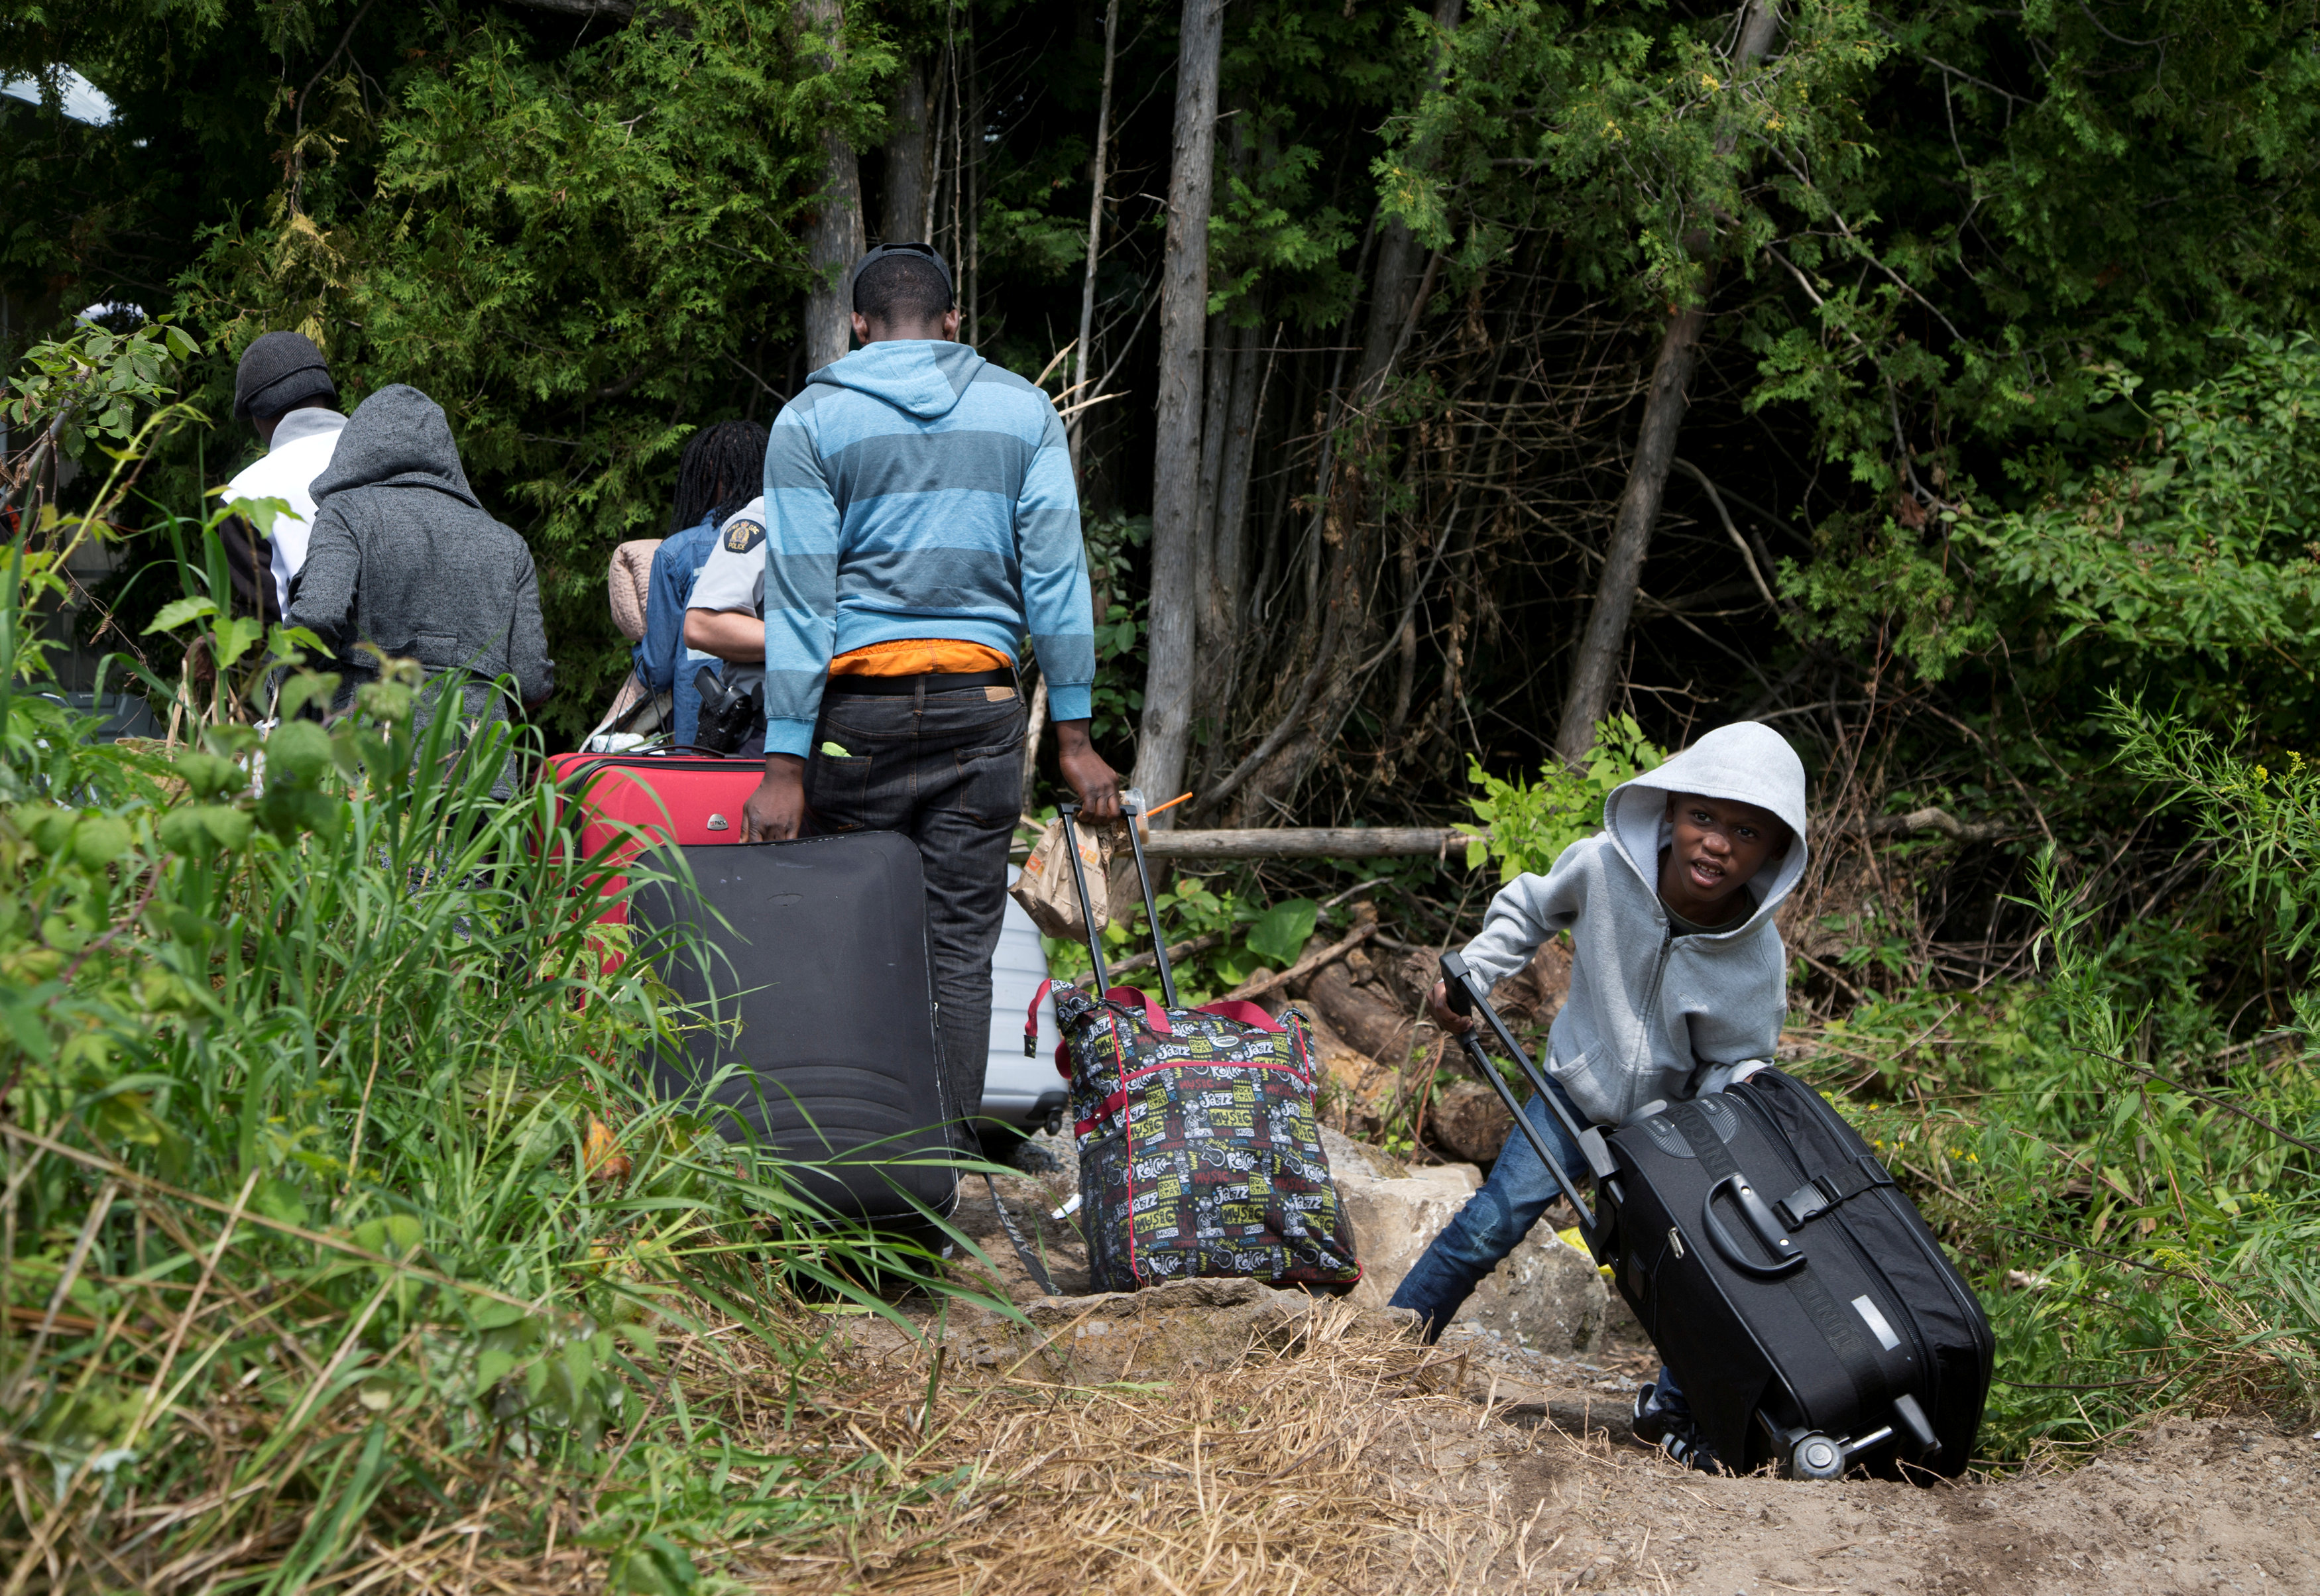 Asylum seekers have flooded into Canada  The government is putting